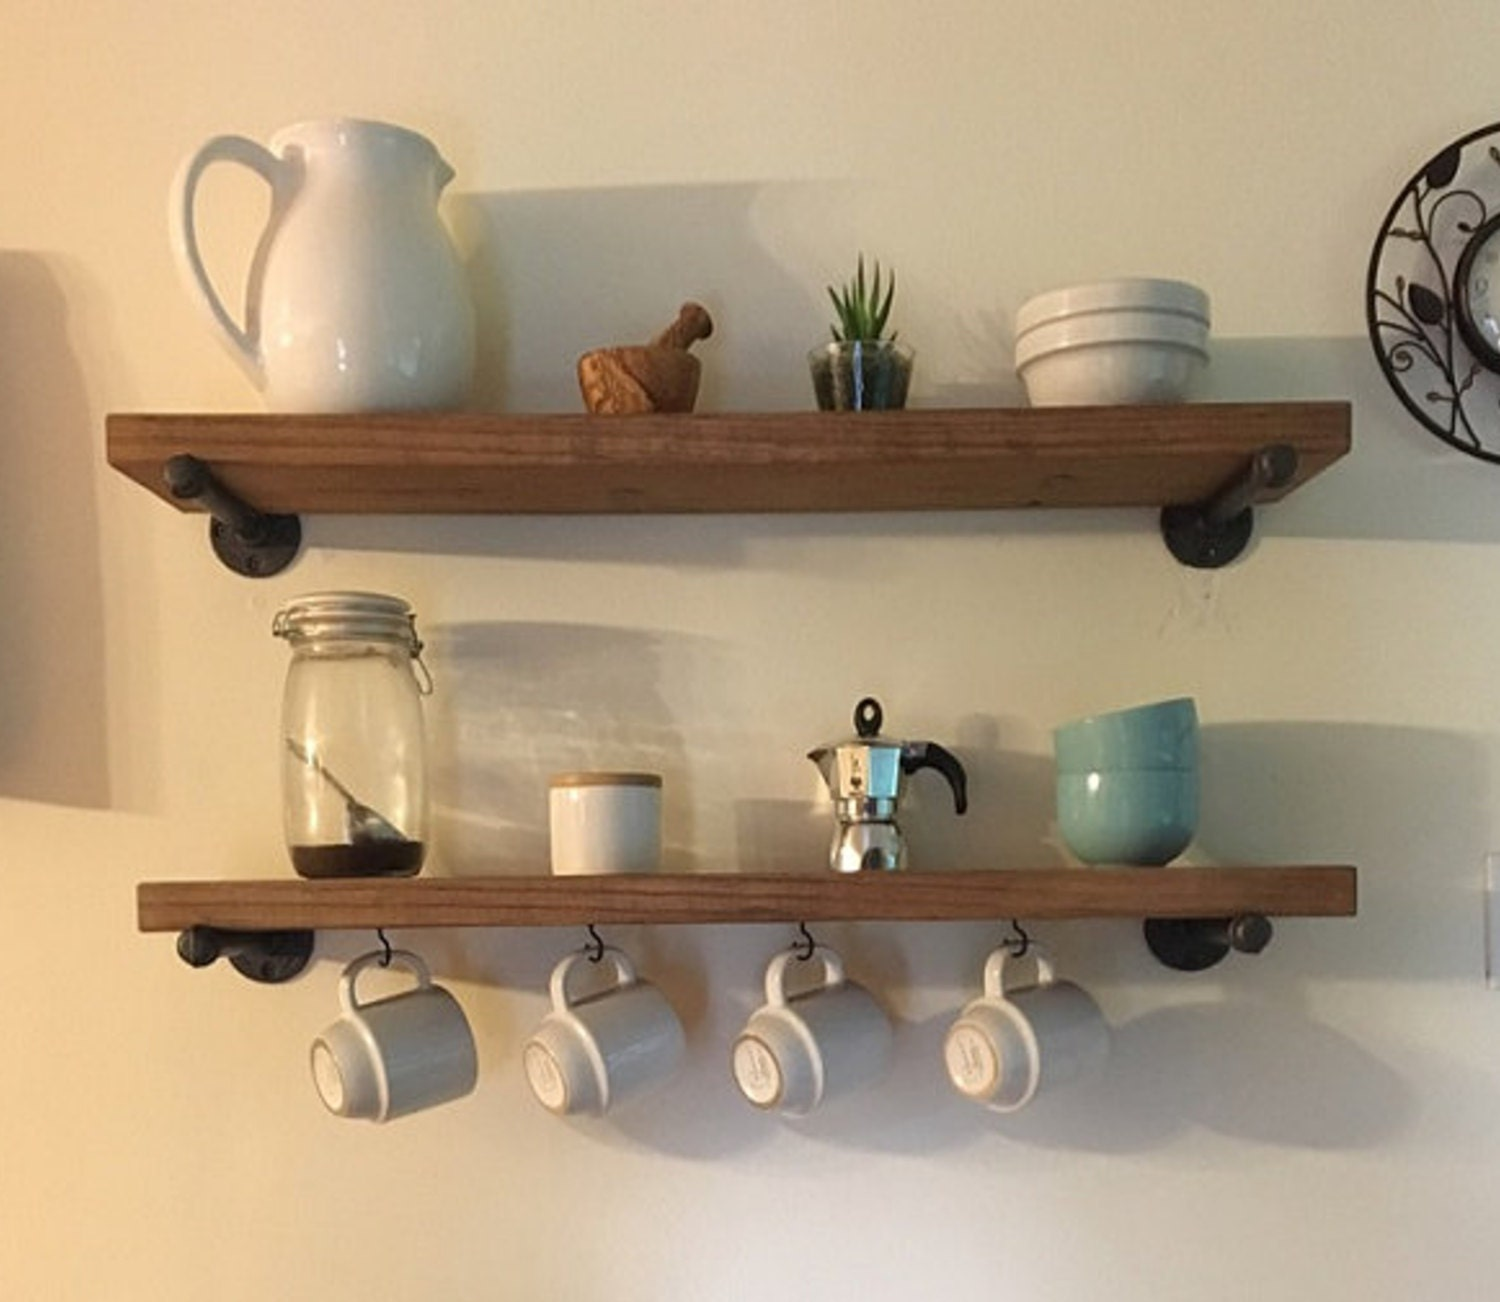 Kitchen Open Shelving Depth: 8 Deep Floating Coffee Cup Shelf Rustic Wood And Pipe